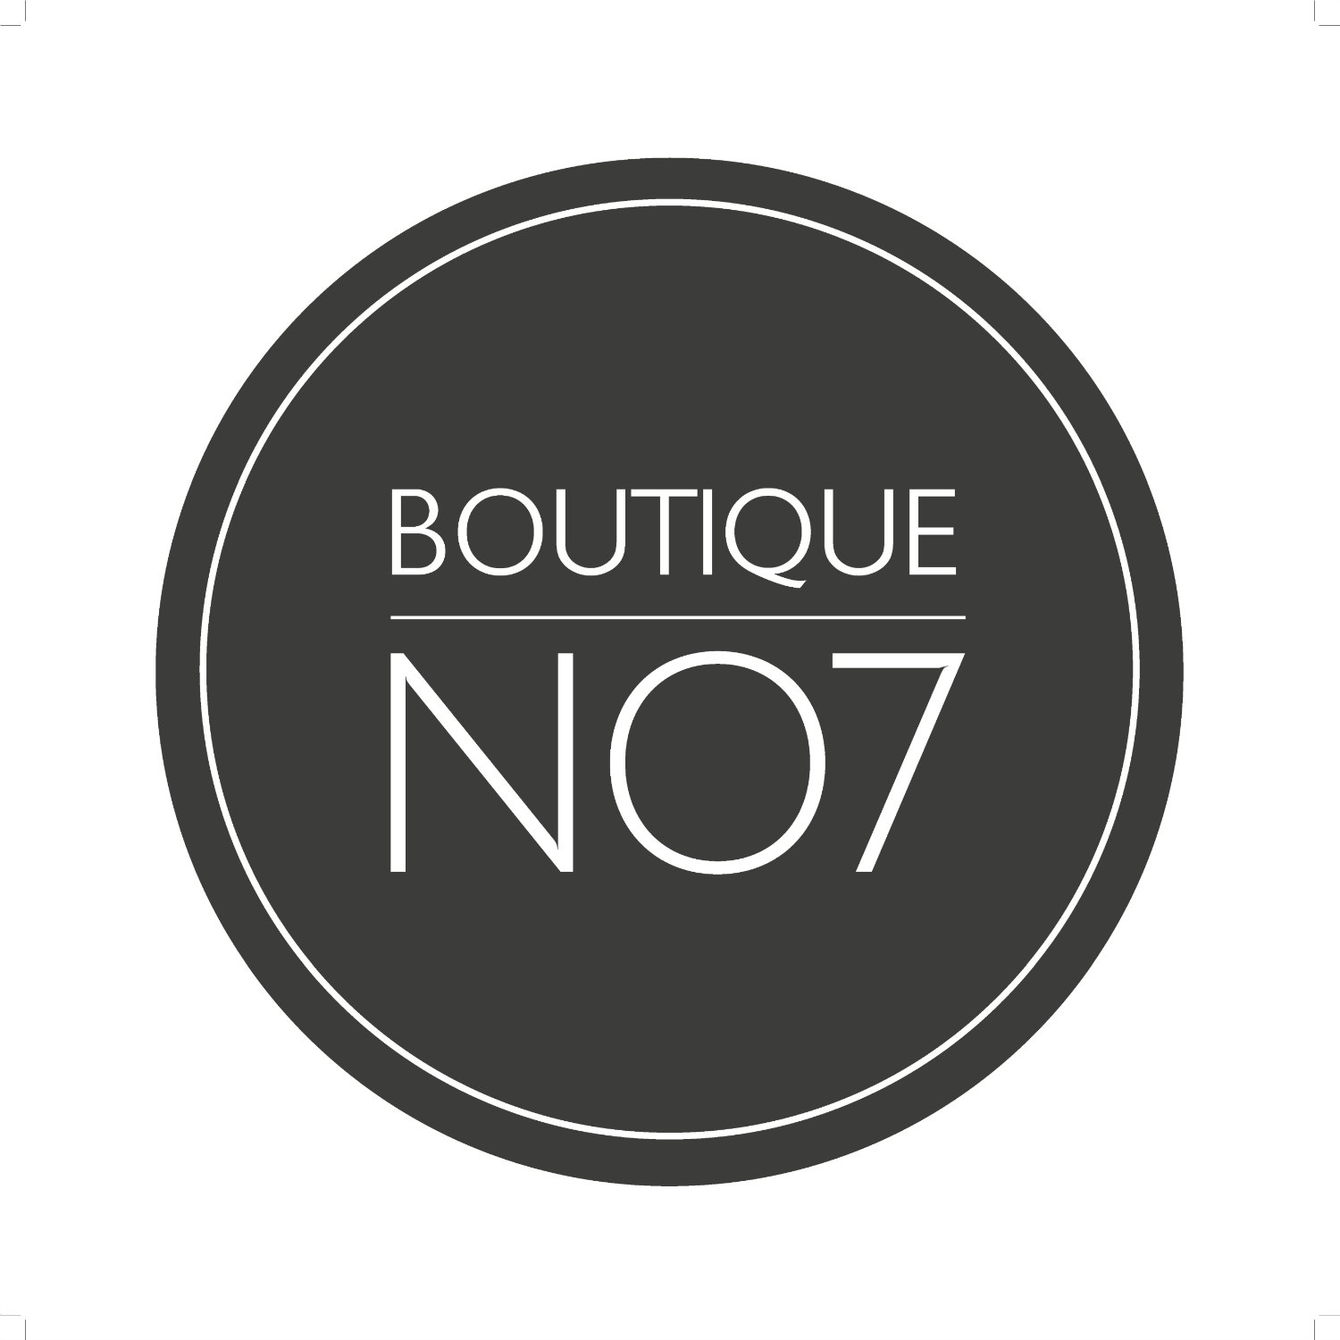 Boutique No7